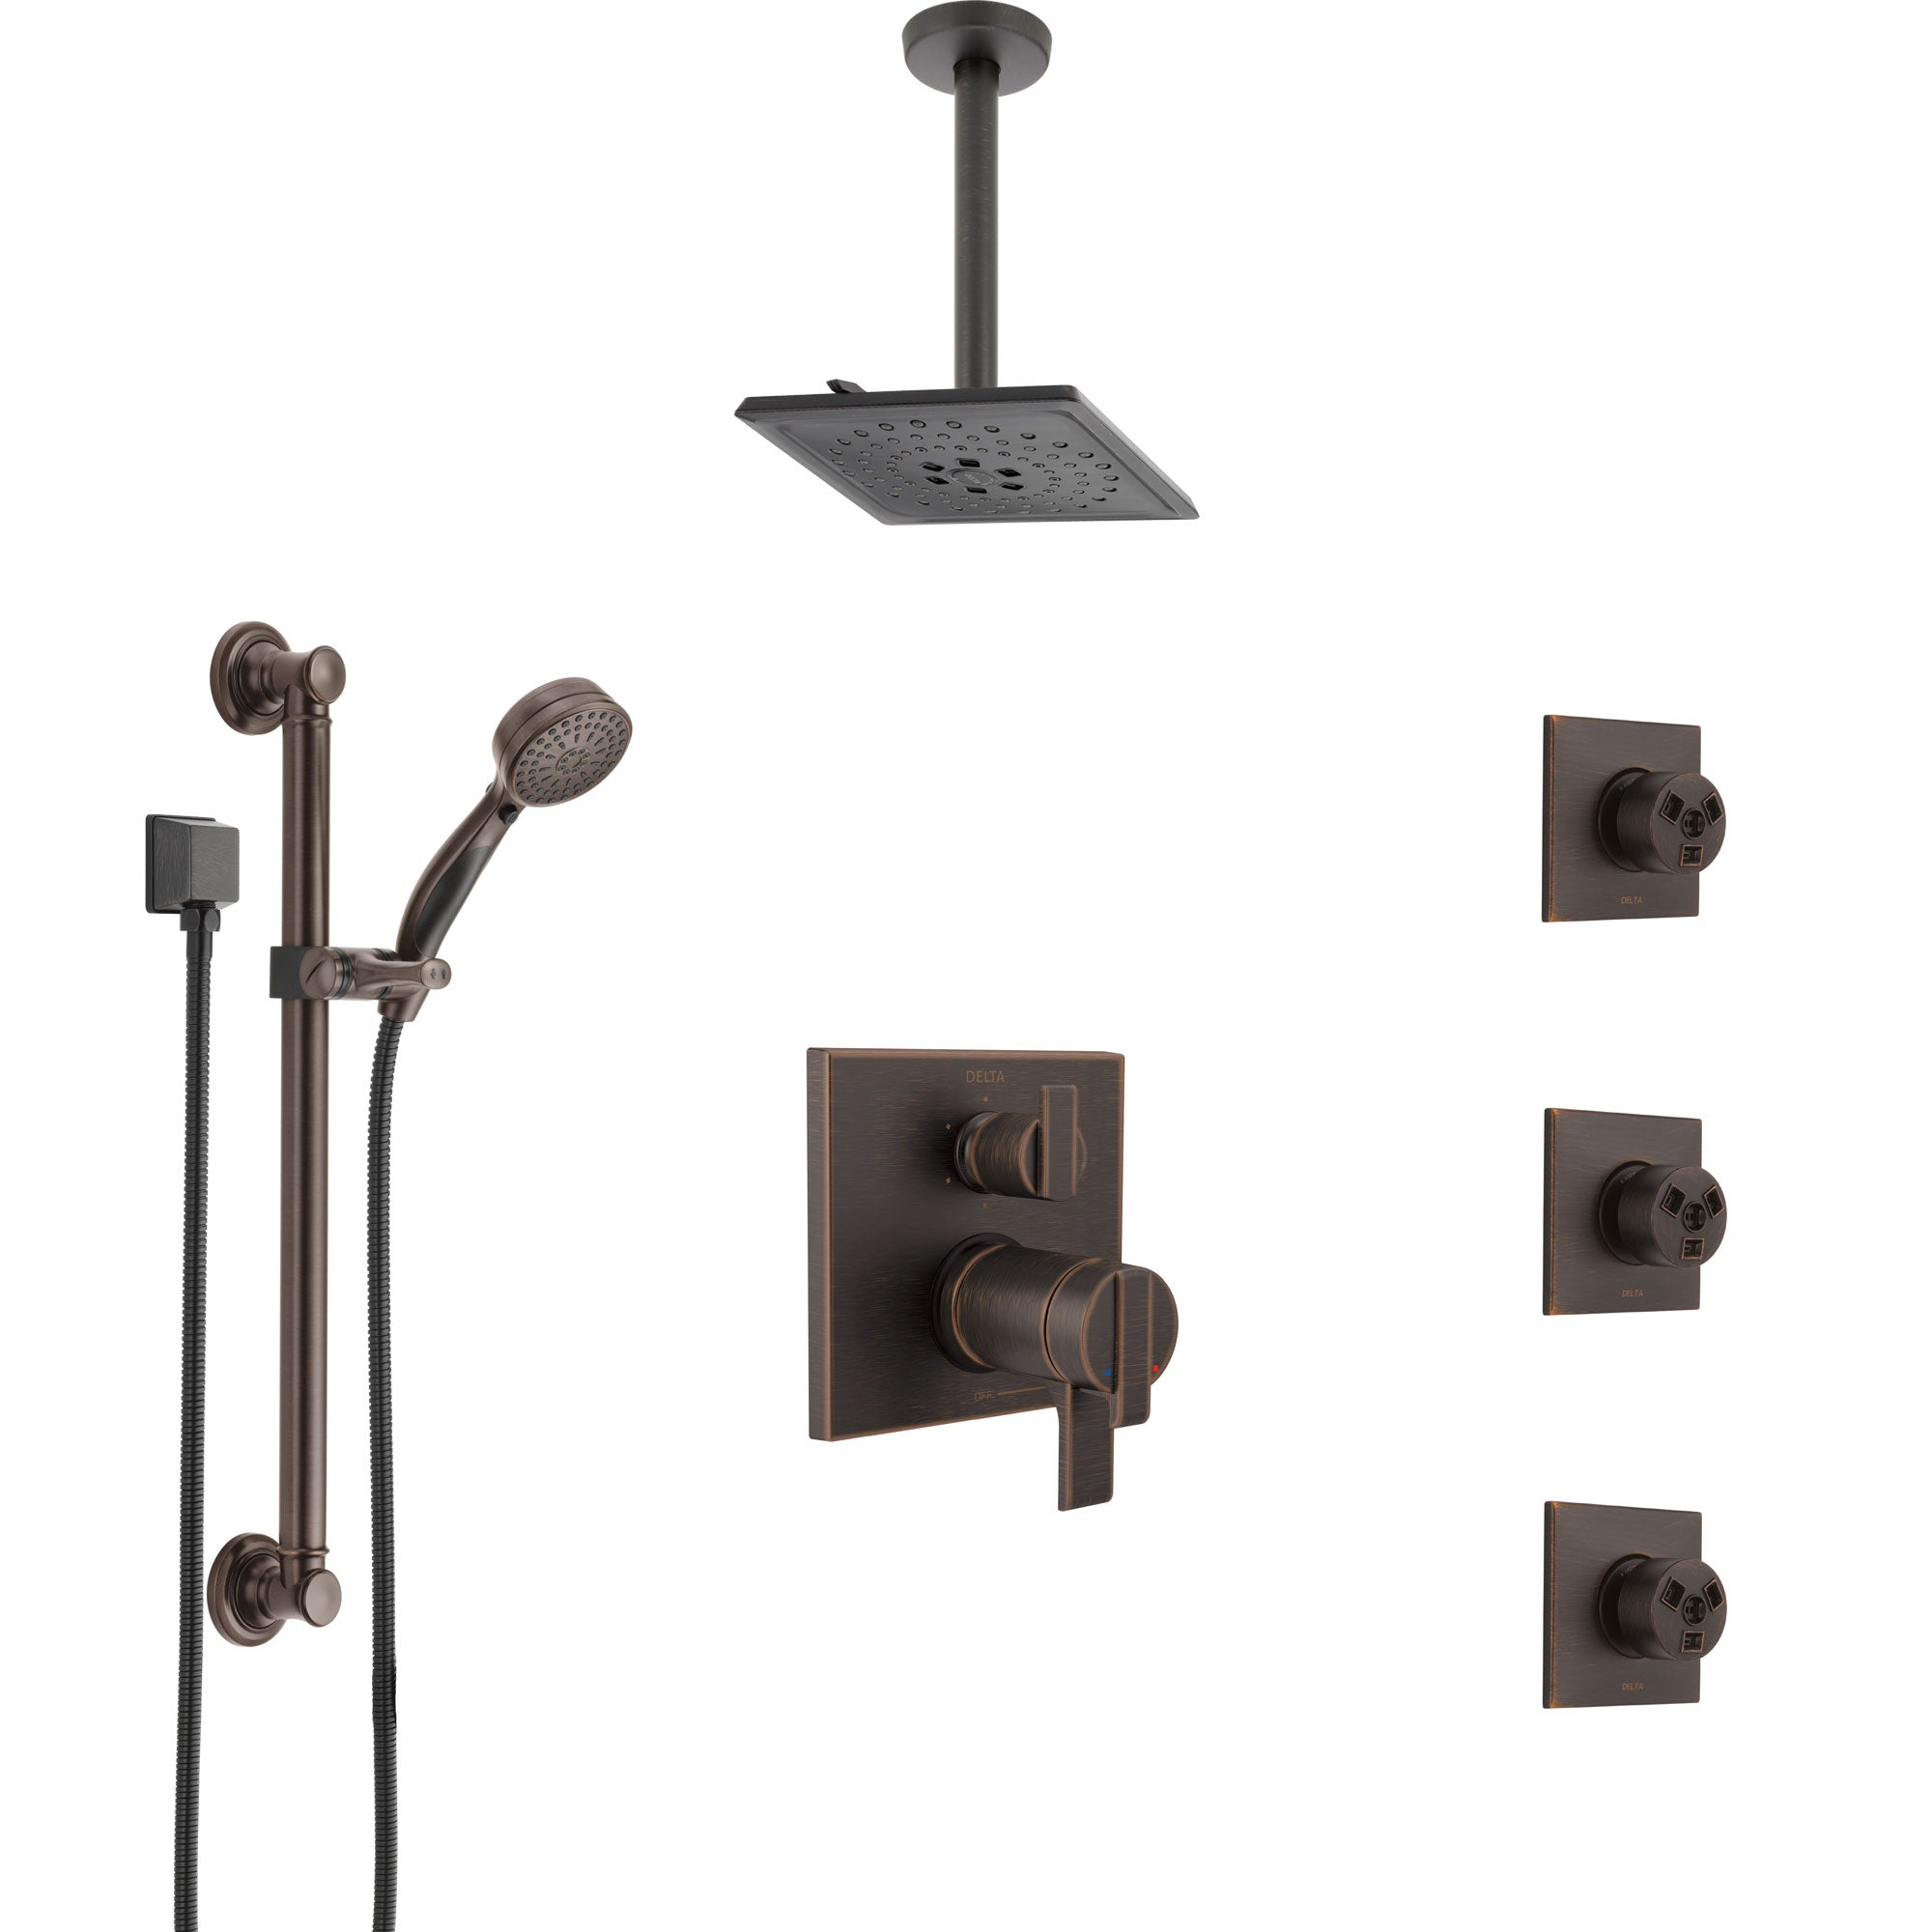 Delta Ara Venetian Bronze Dual Thermostatic Control Shower System, Ceiling Showerhead, 3 Body Jets, Grab Bar Hand Spray SS27T967RB4